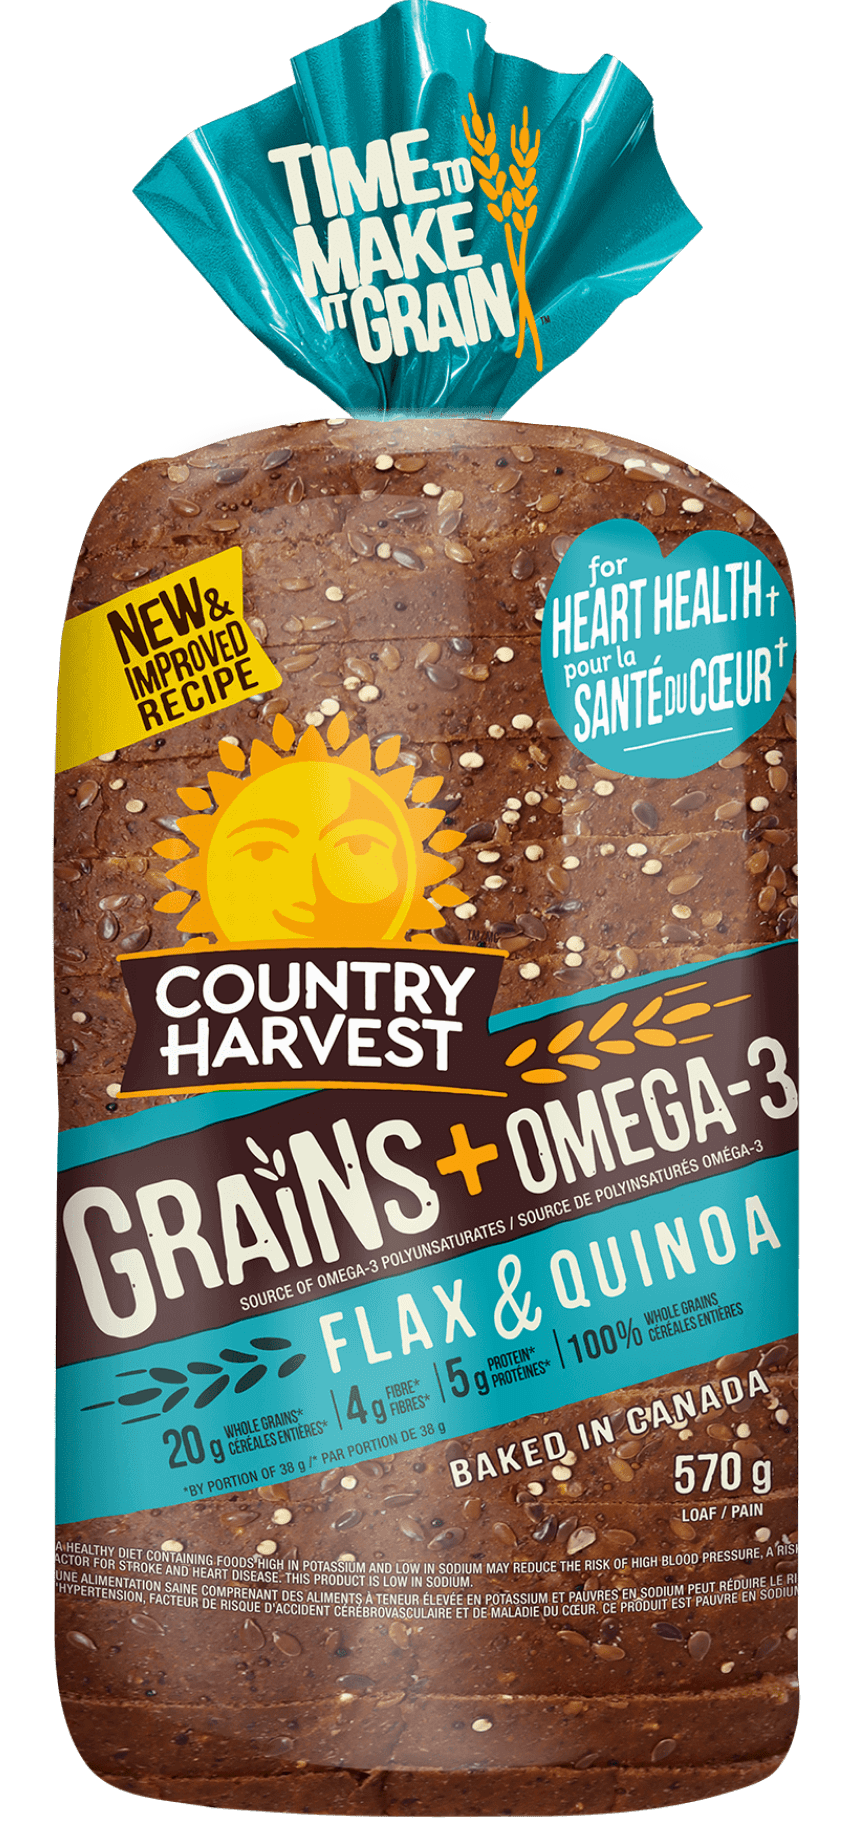 Country-Harvest-Flax-Quinoa-ENG-Pack-min